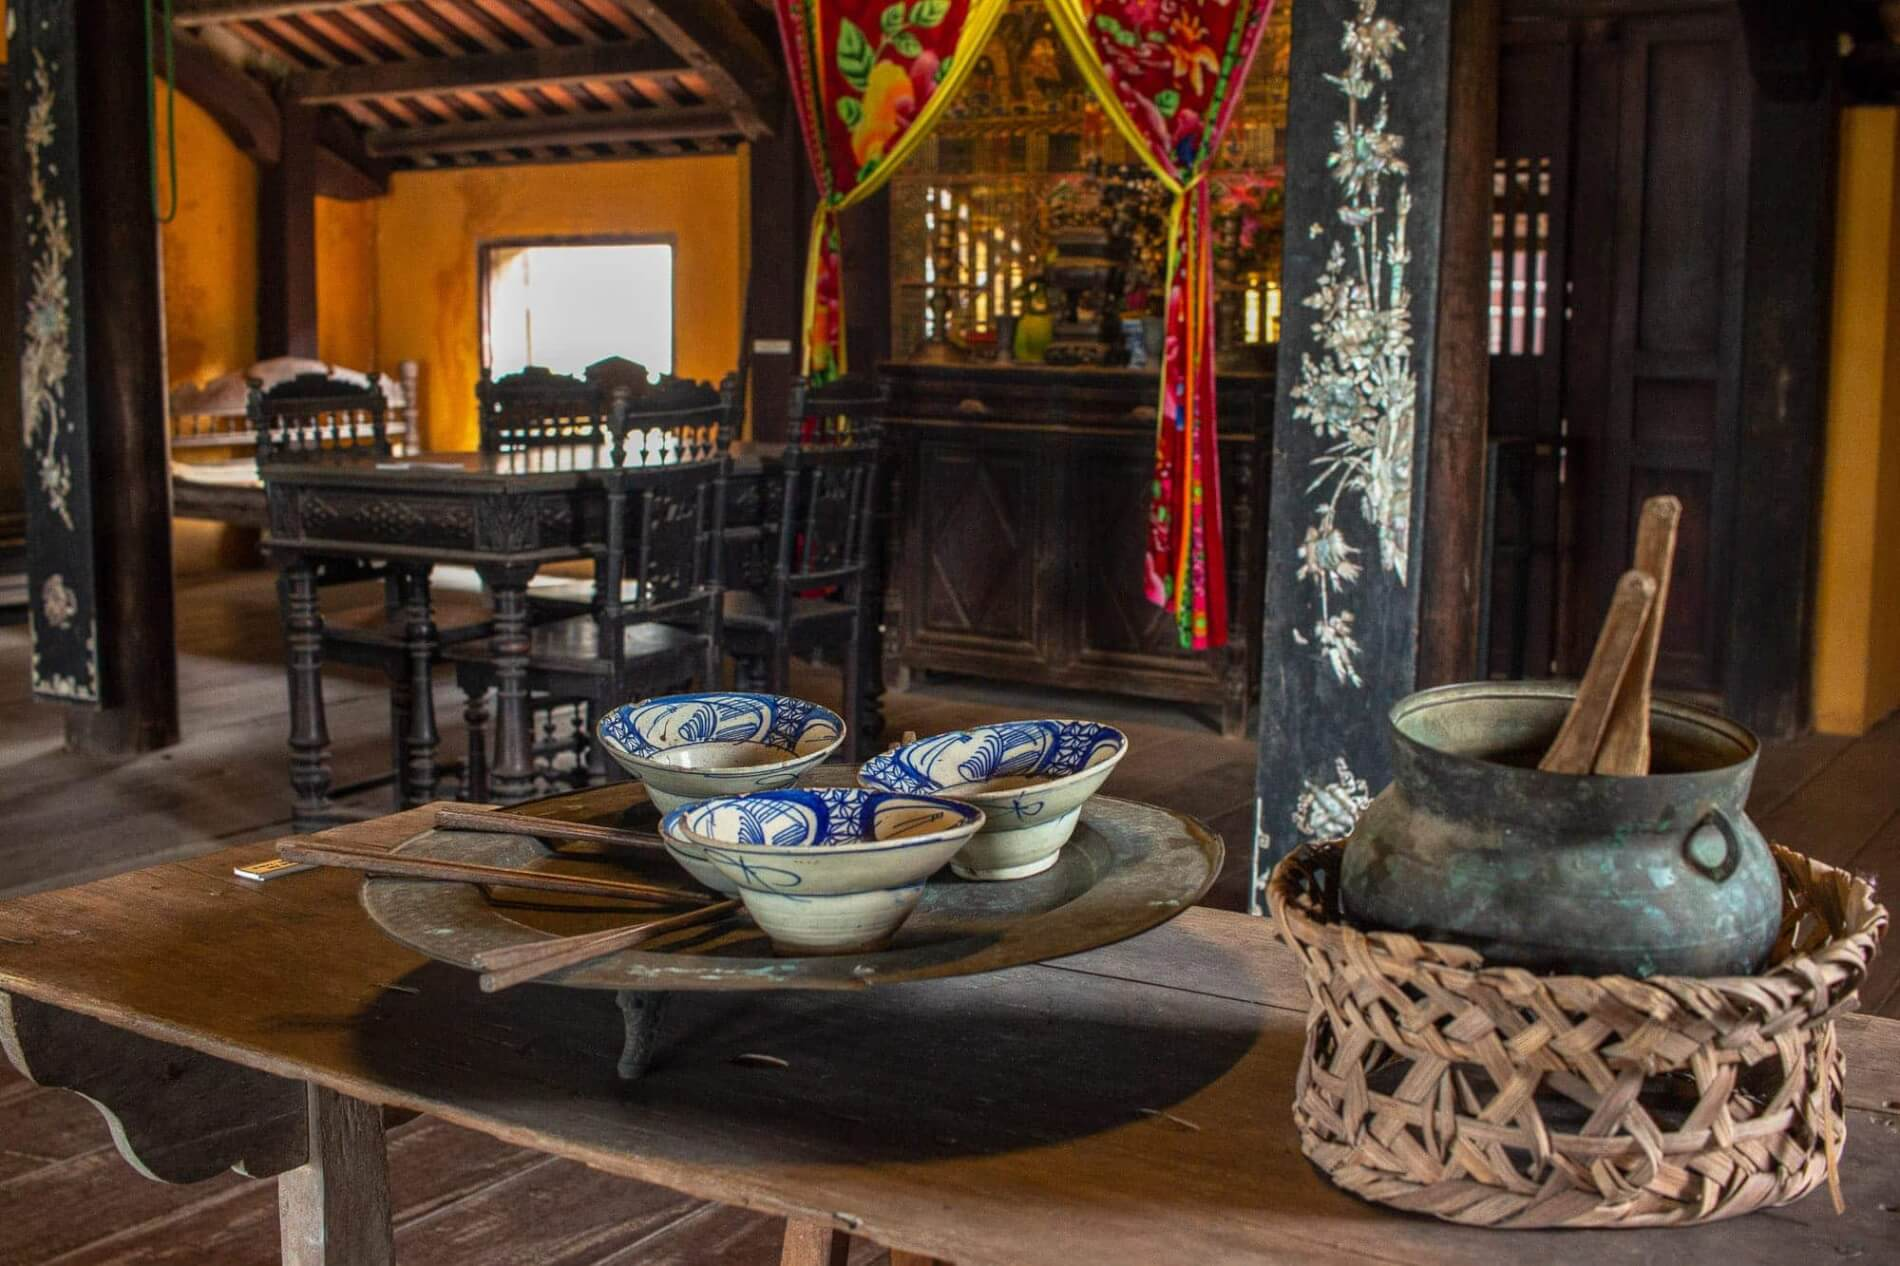 The Museum of History and Folklore - Hoi An museums in Hoi An Old Town